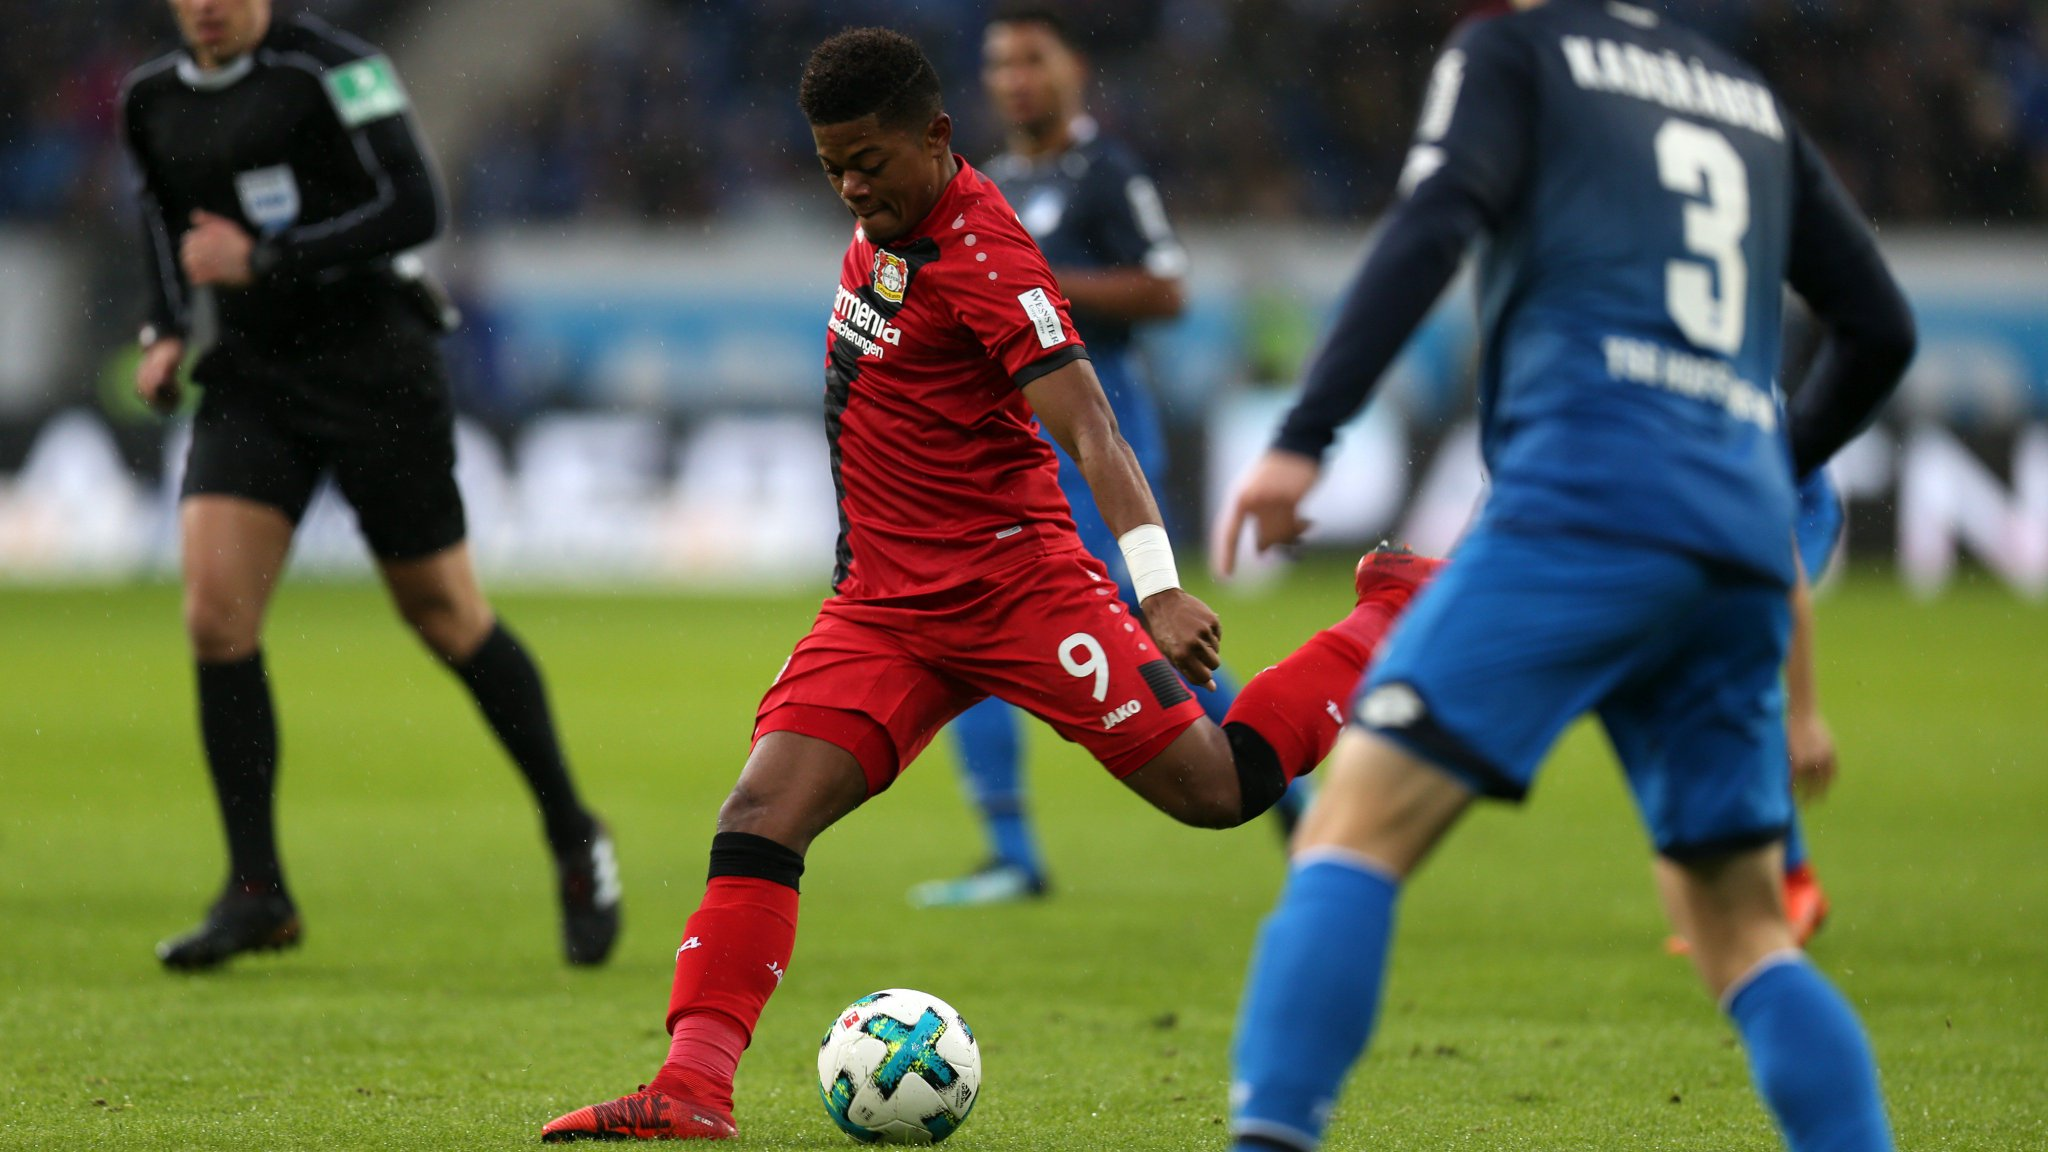 Hoffenheim vs Bayer Leverkusen Highlights